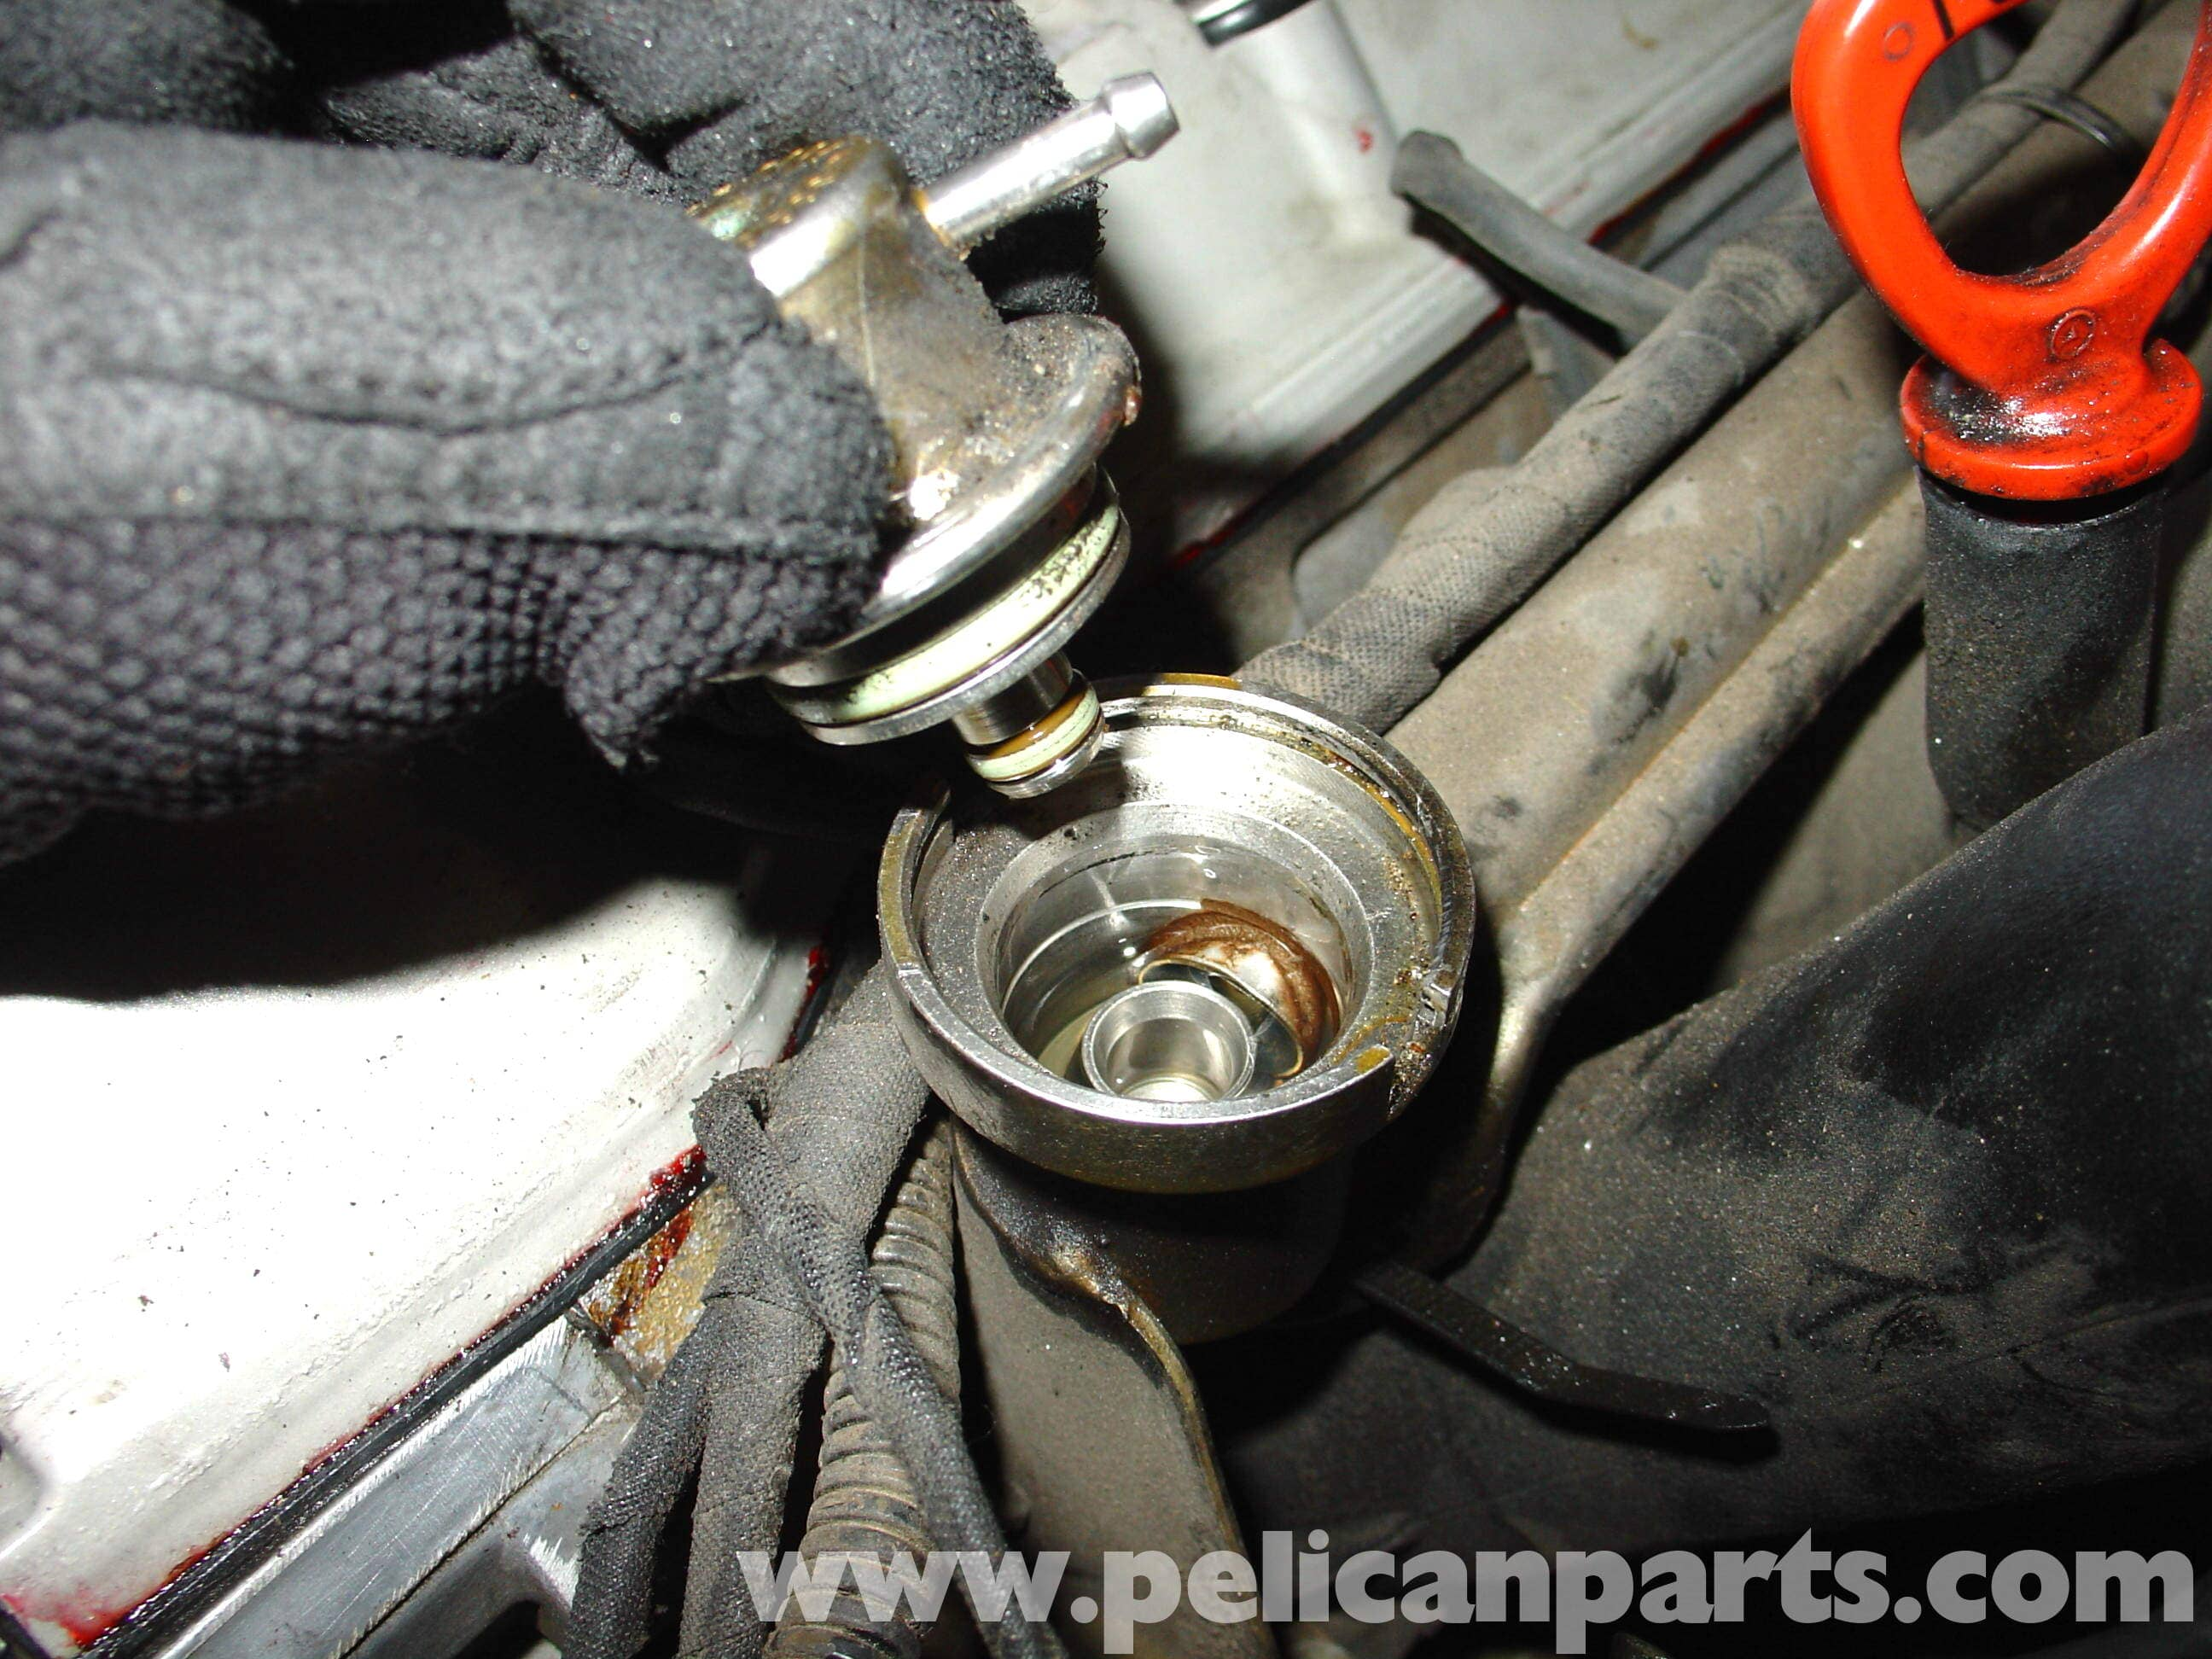 Mercedes-Benz W210 Fuel Pressure Regulator Replacement (1996-03 ...